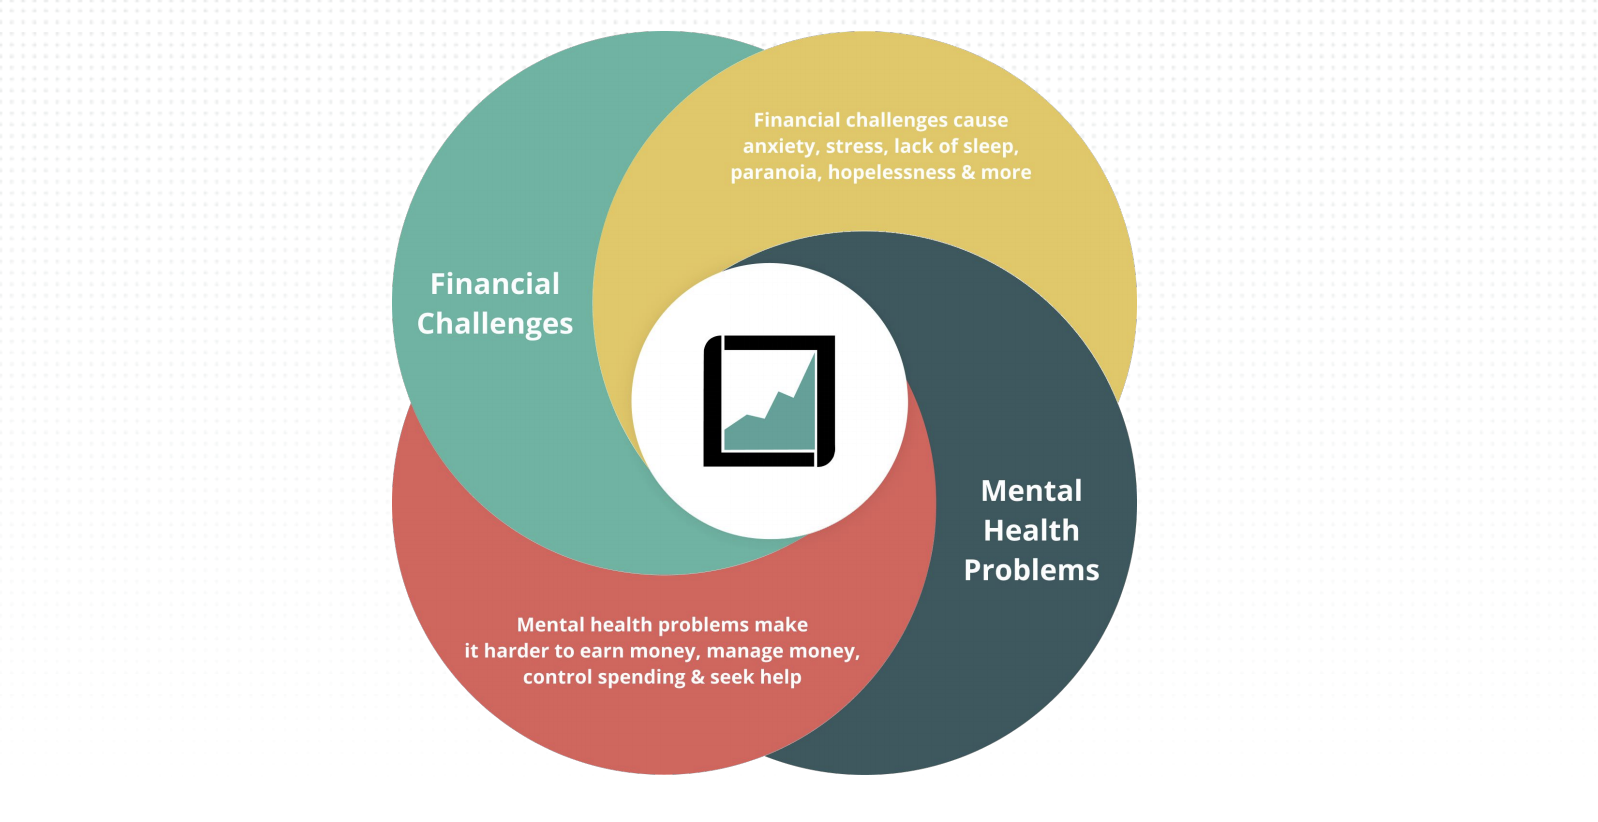 financial wellbeing and mental health spiral